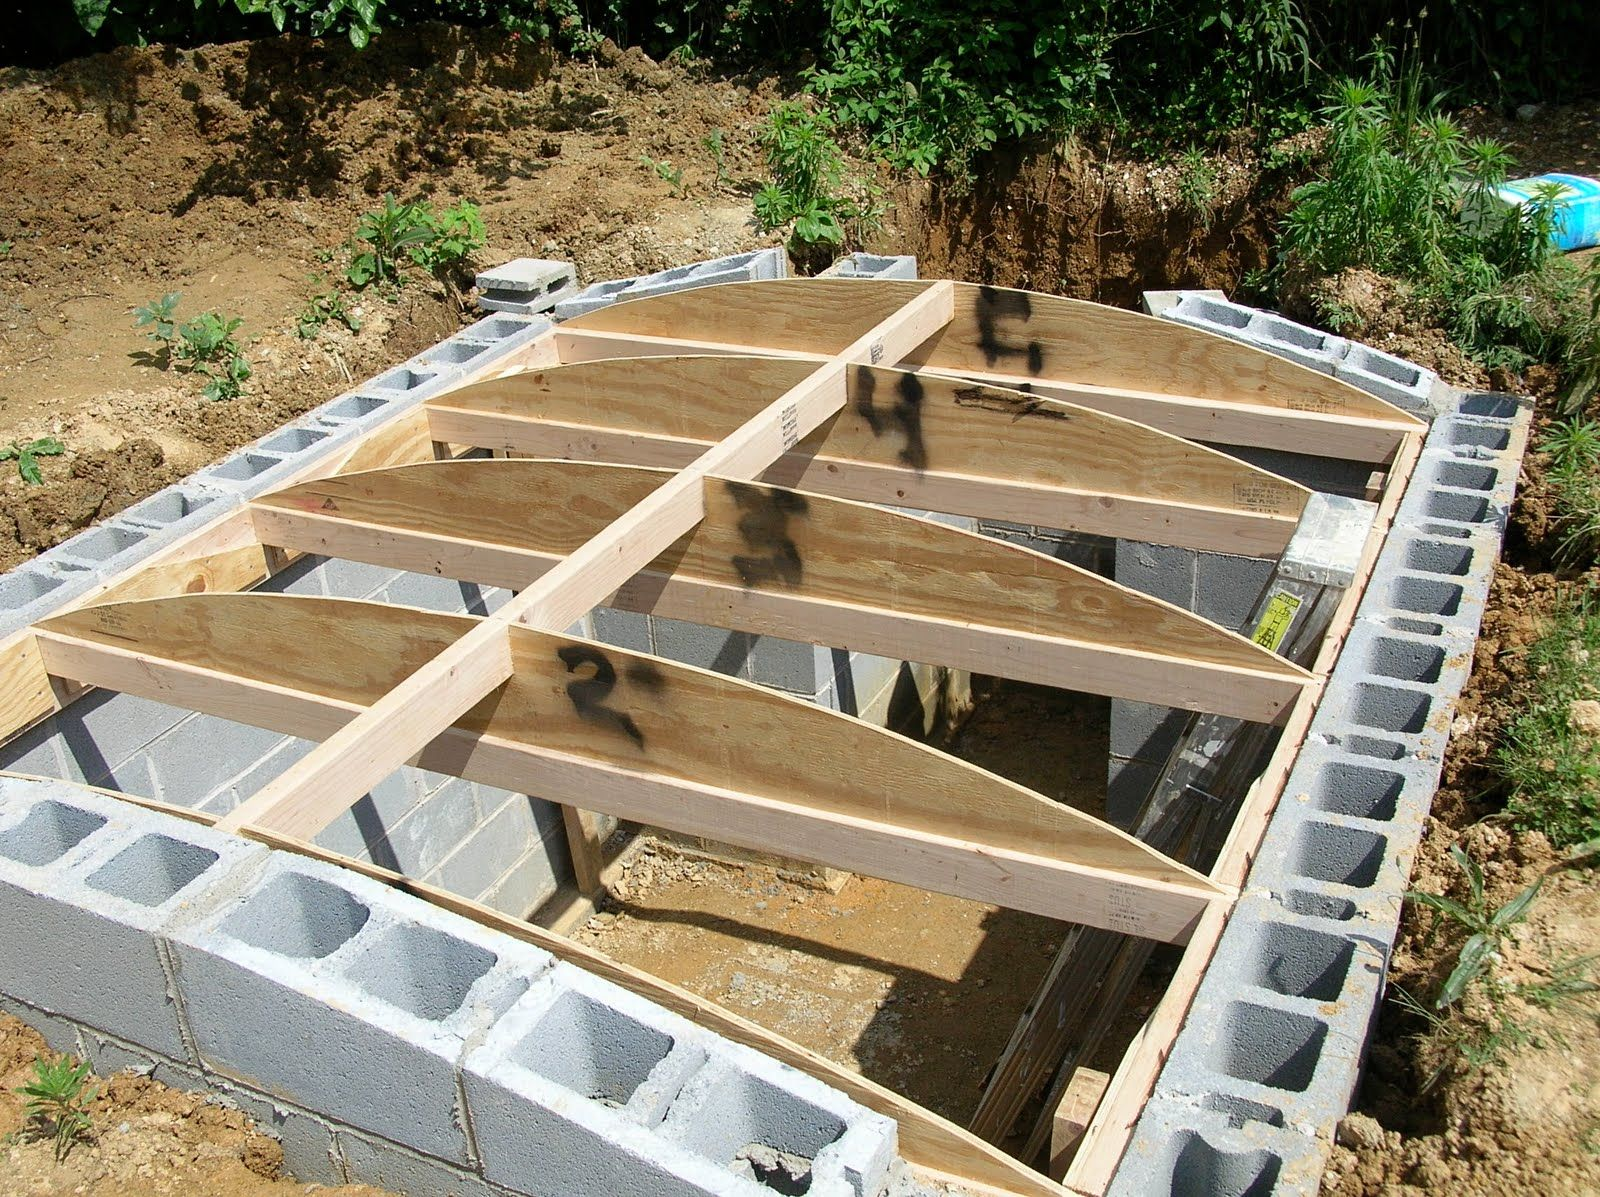 How To Make A Underground House Common Construction Methods Of Root Cellars Digging Down Into The